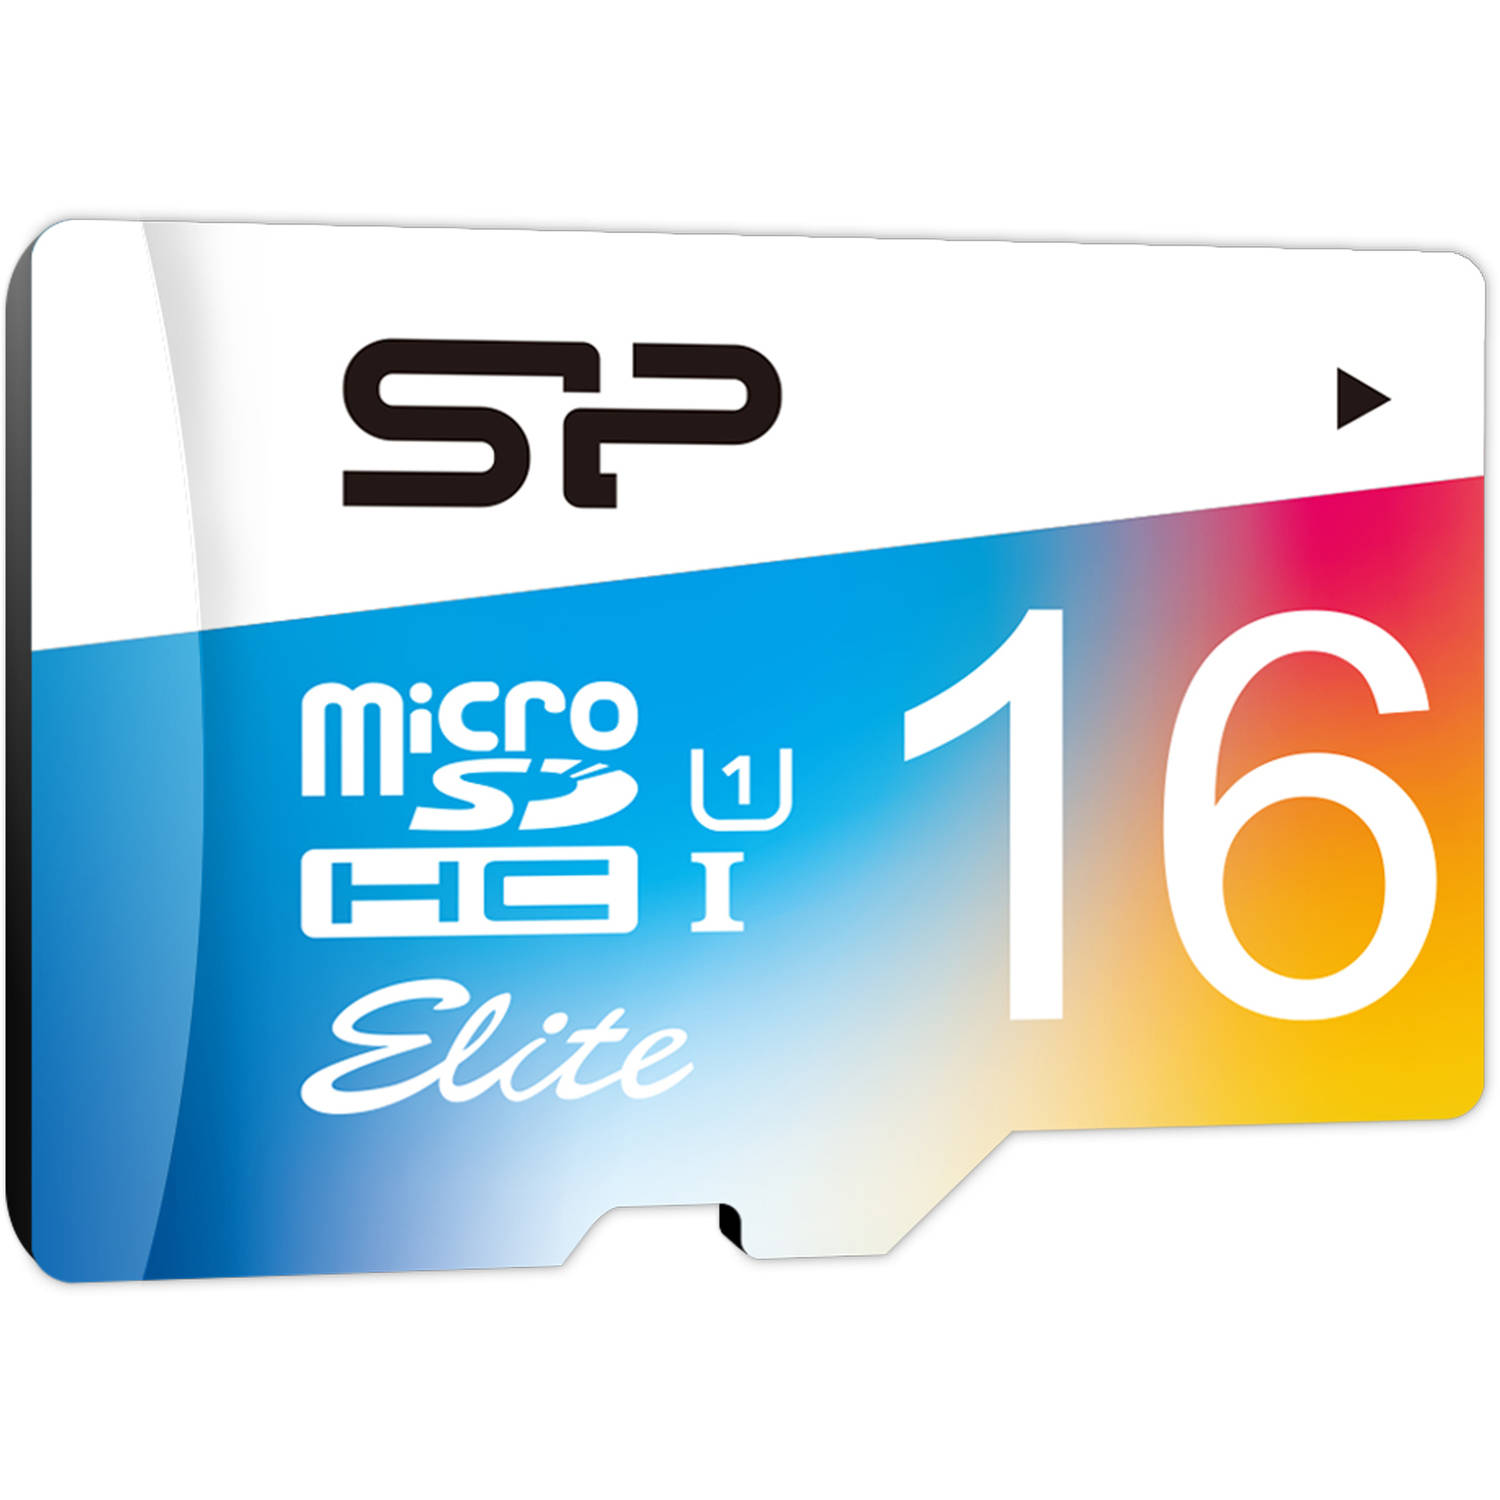 Silicon Power 16GB microSDHC UHS-1 Class 10 Elite Flash Memory Card with Adapter